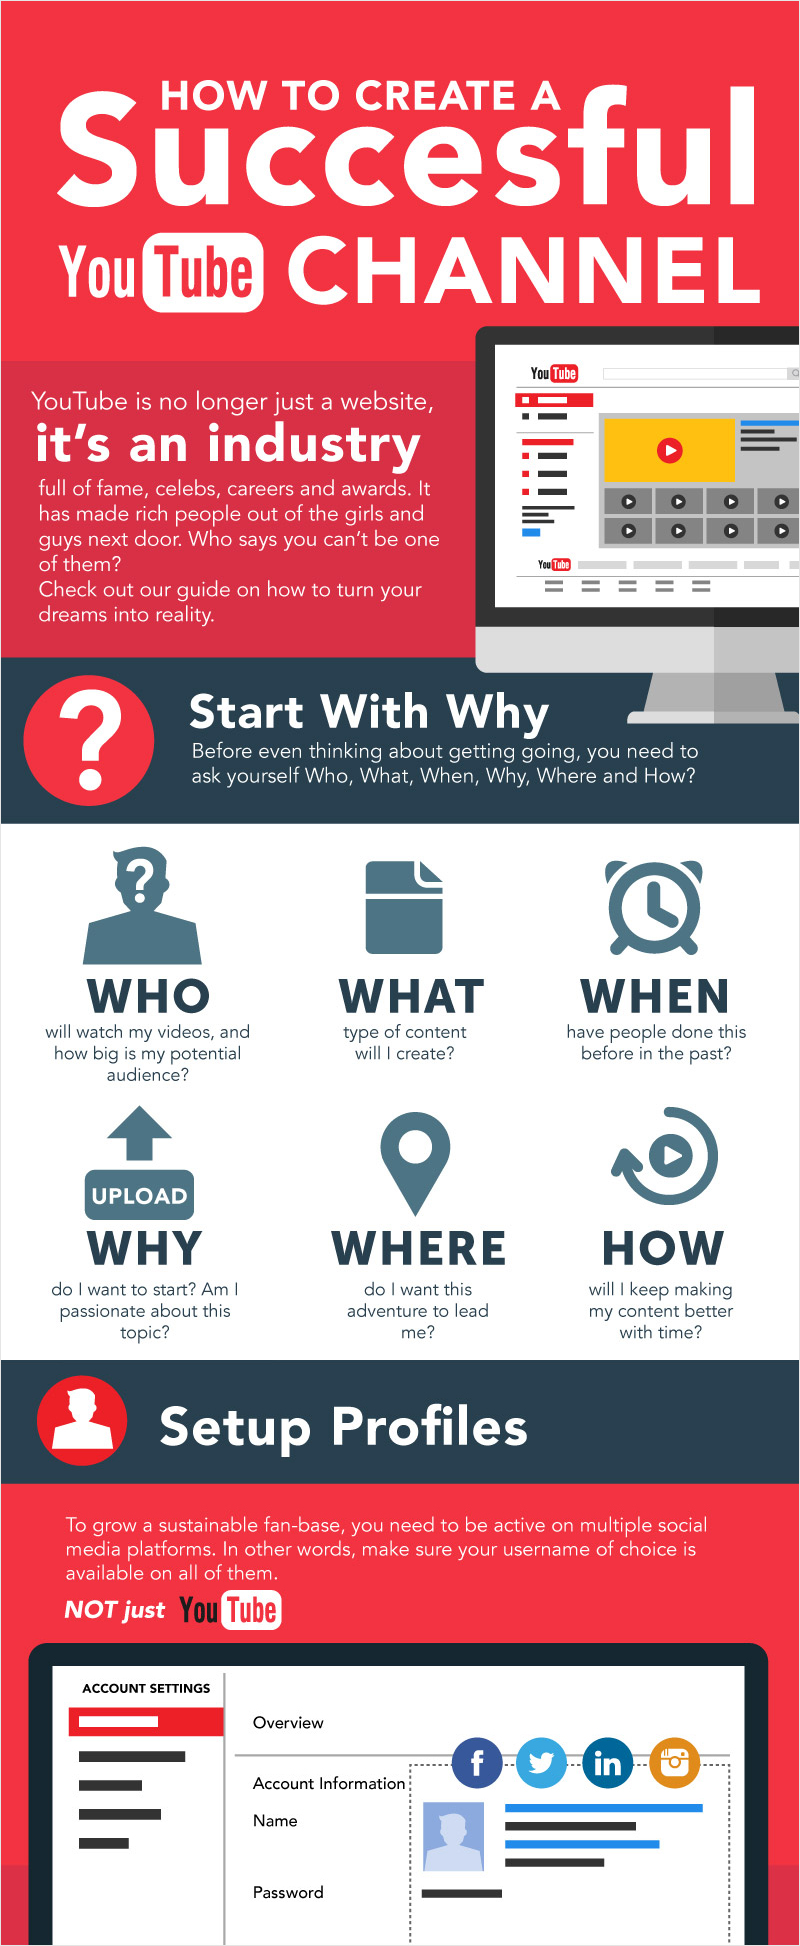 Social-Media-How-to-Start-a-Successful-Youtube-Channel-Infographic best infographics best infographic examples